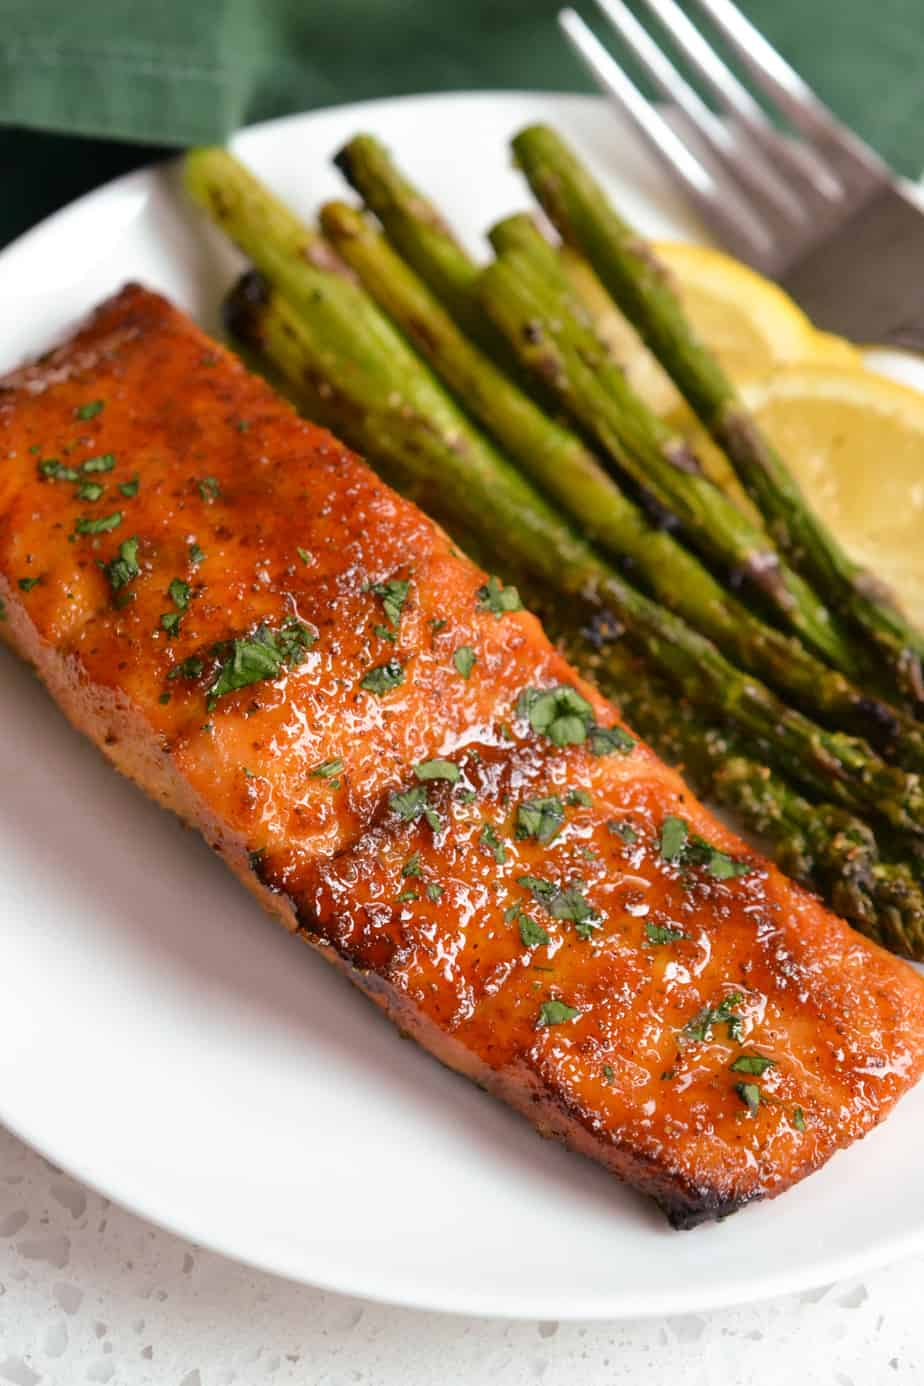 A salmon filet with asparagus on a plate.